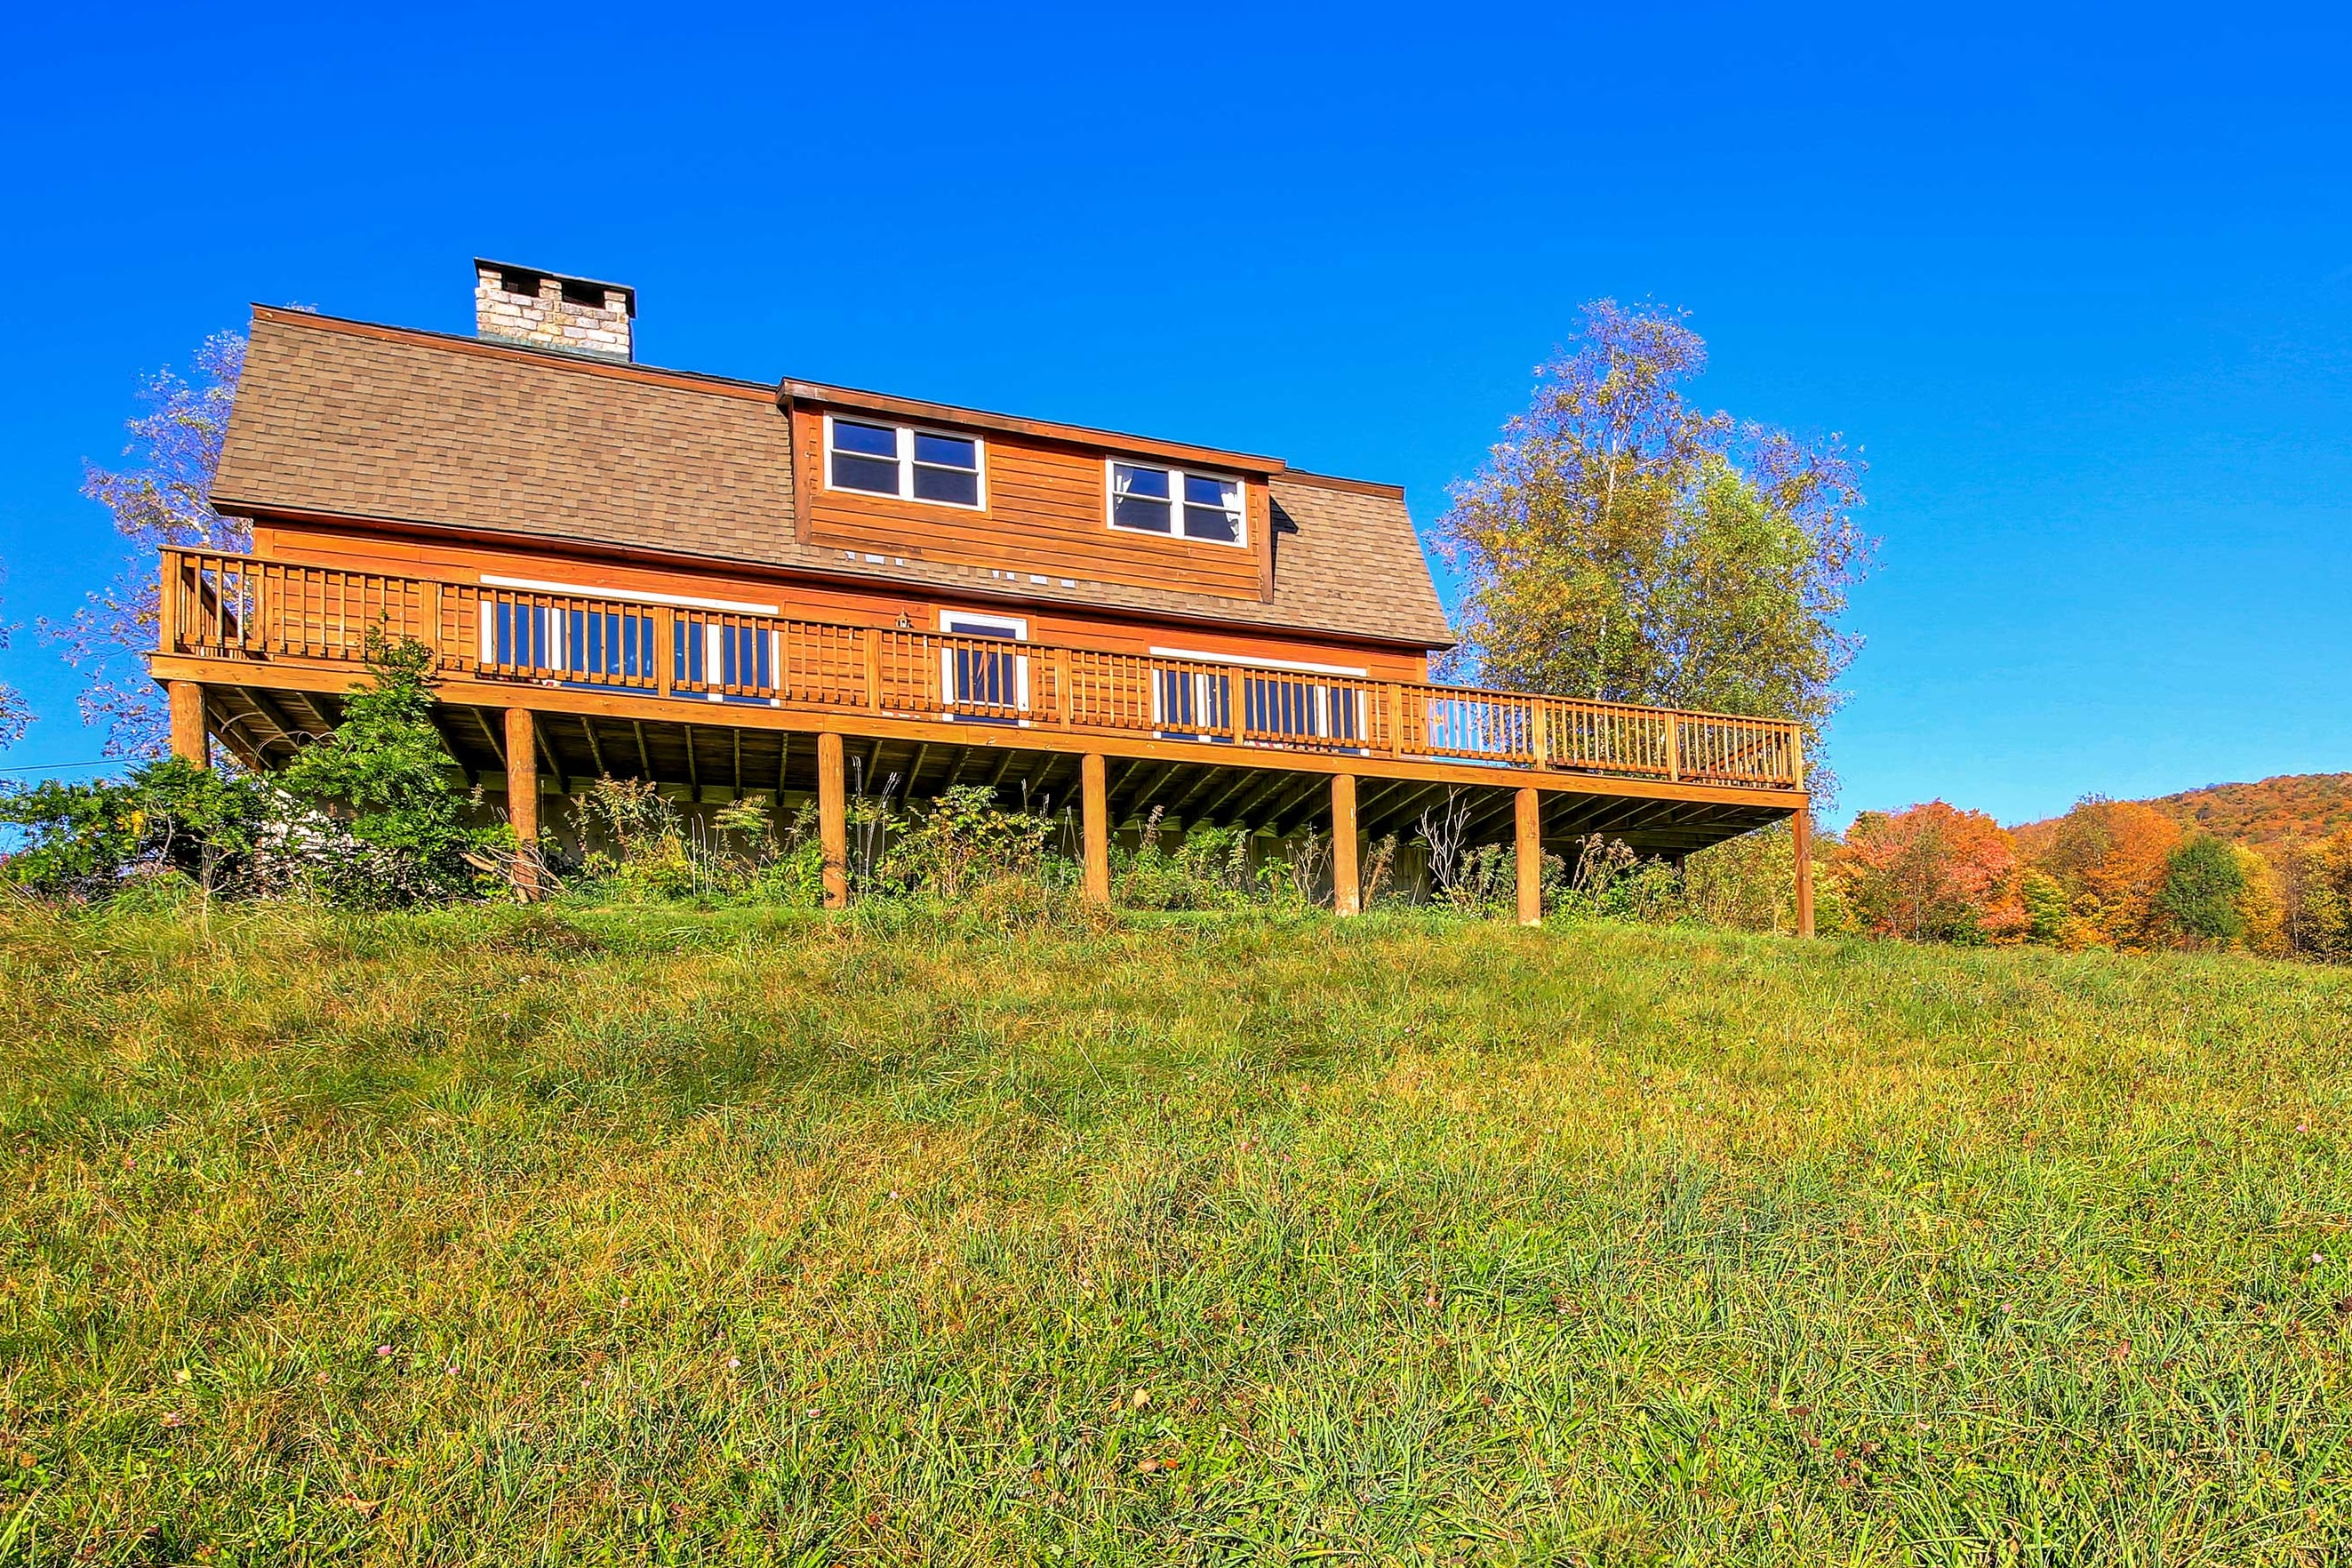 Rest easy in the New York countryside at this unforgettable Halcott hideaway!